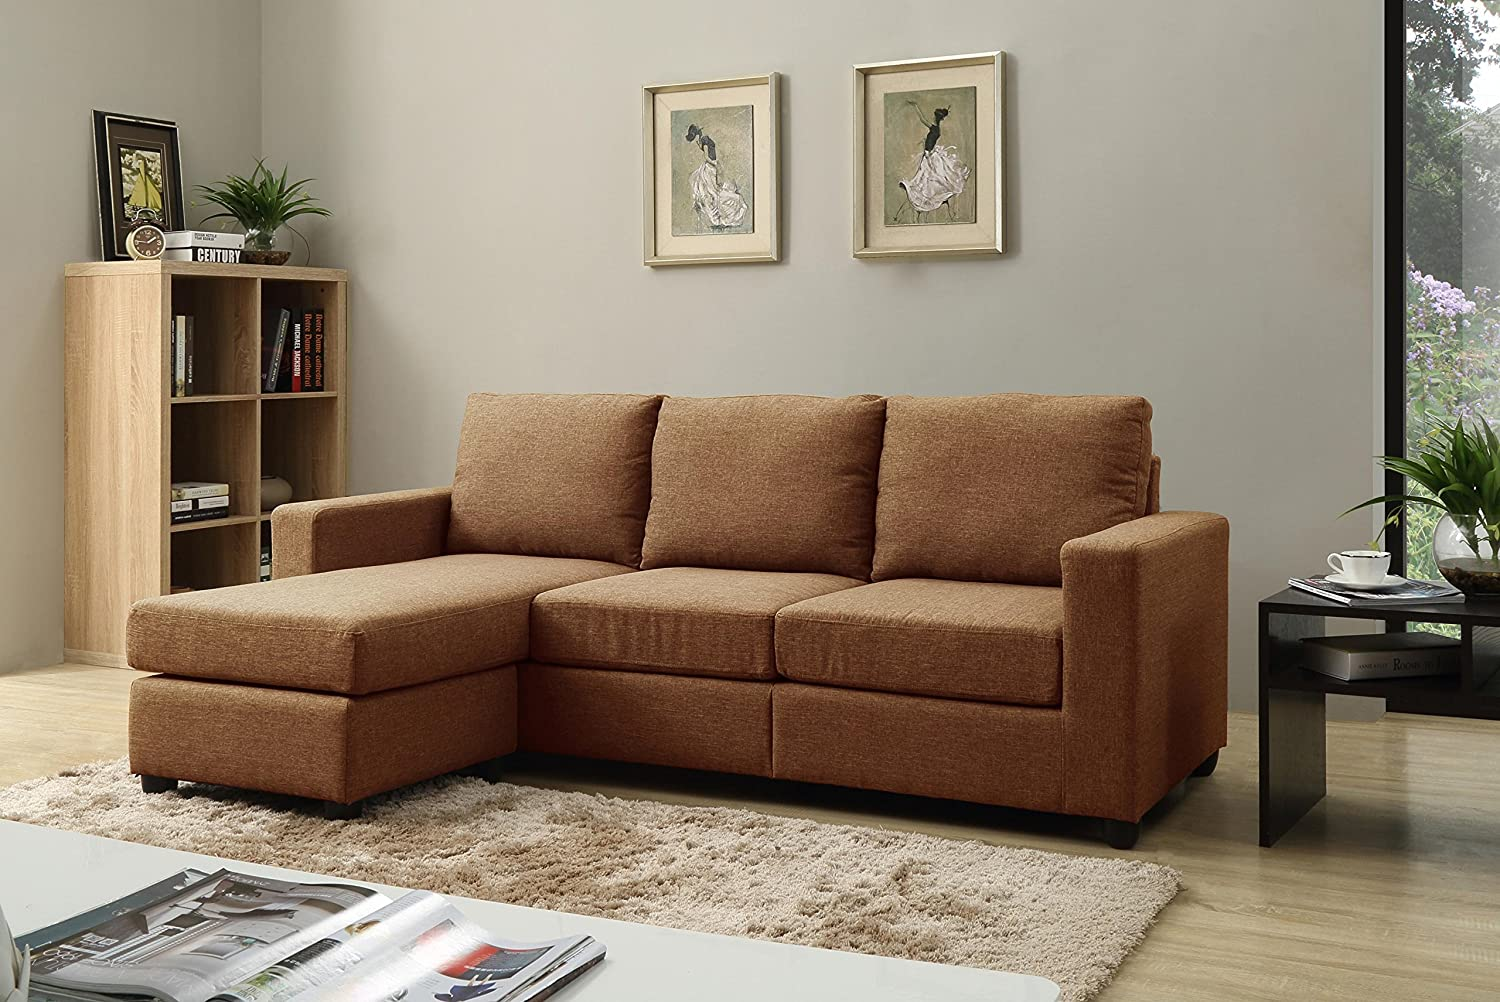 NHI Express Alexandra Convertible Sectional, Brown